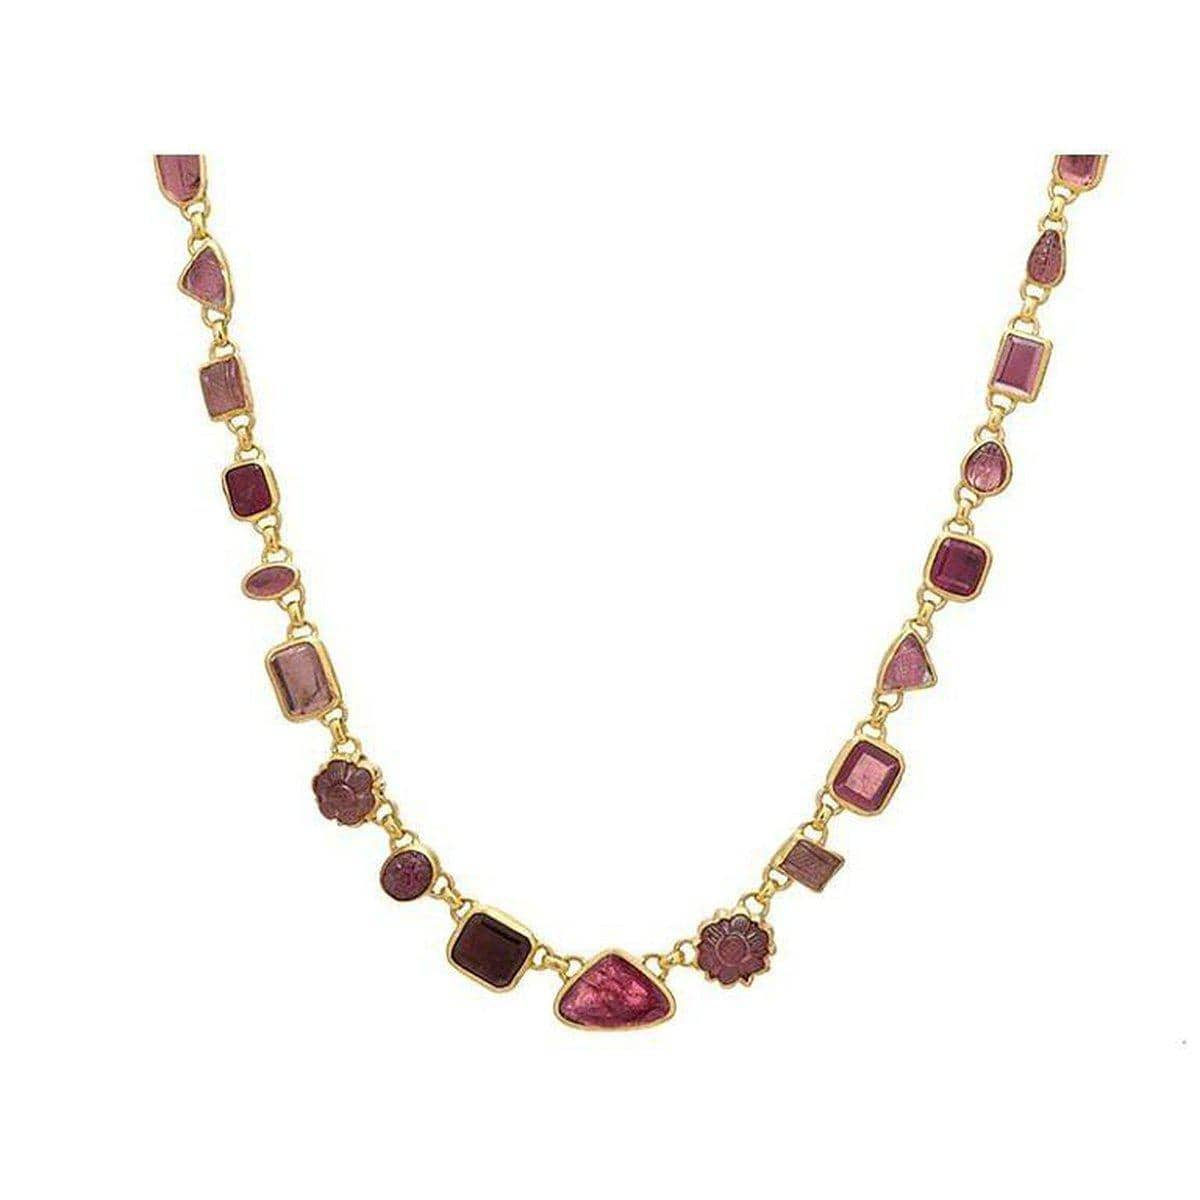 Elements 24K Gold Pink Tourmaline Necklace - N-U24254-PT